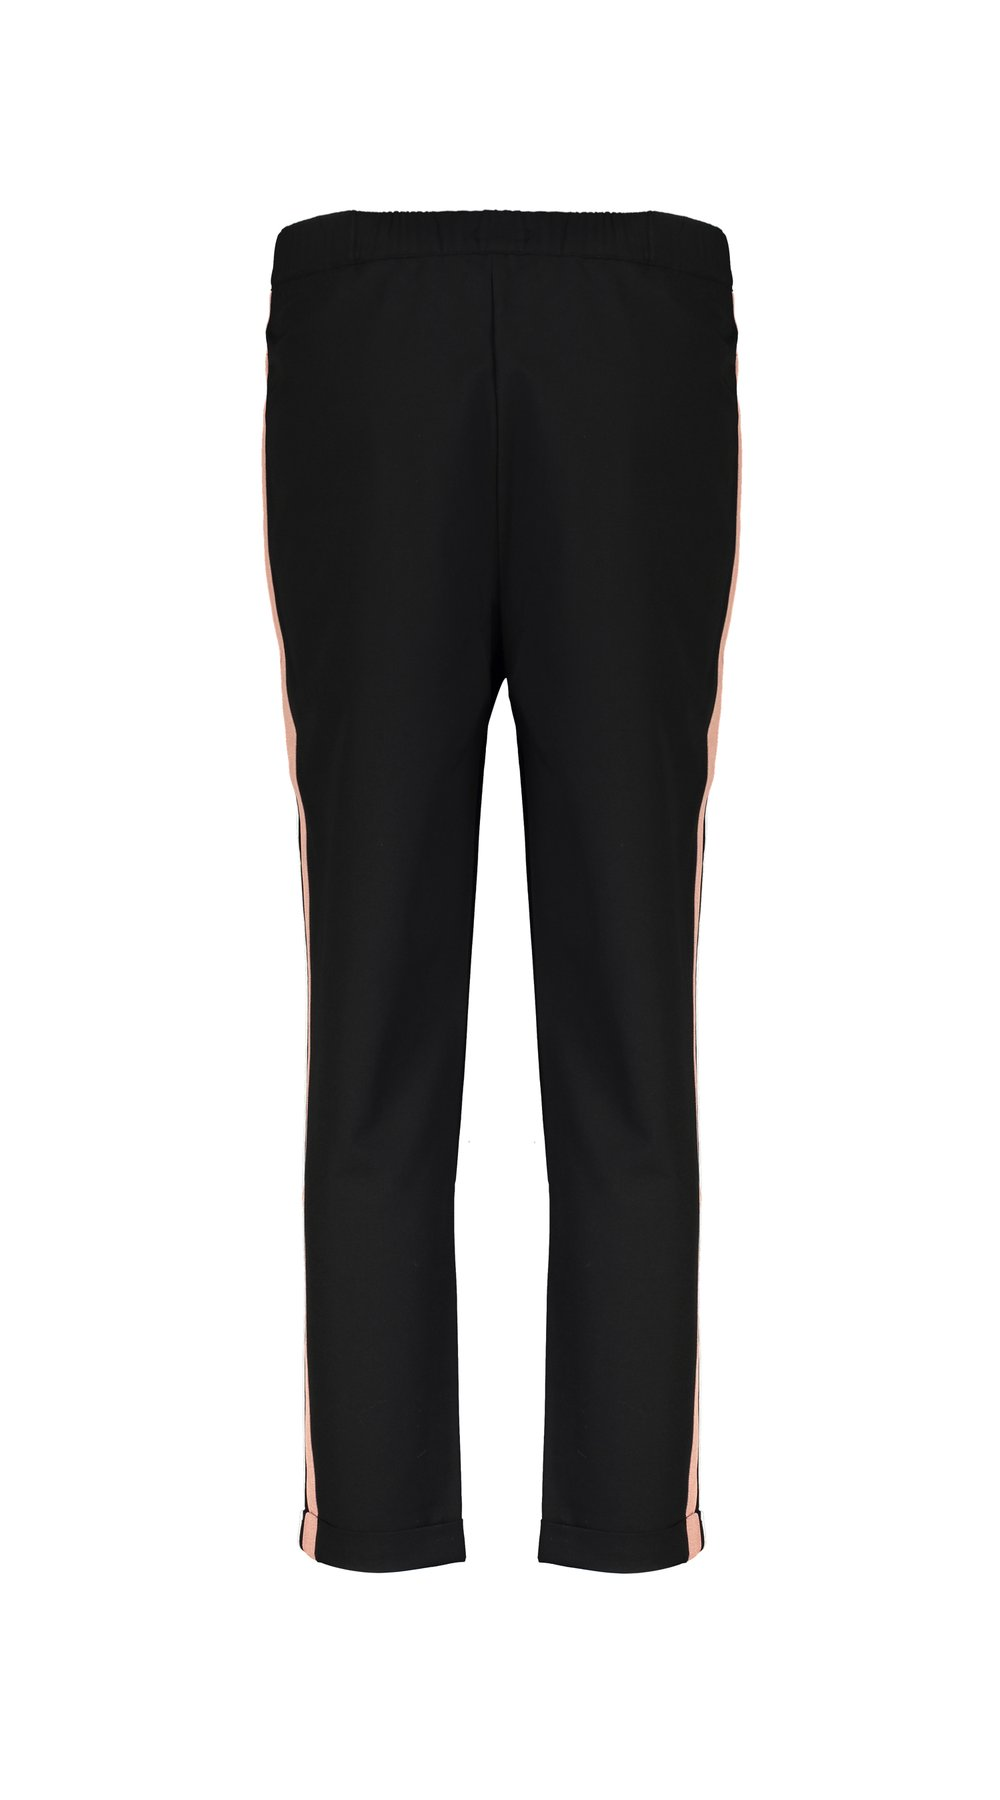 MUNROE PANTS - BLACK